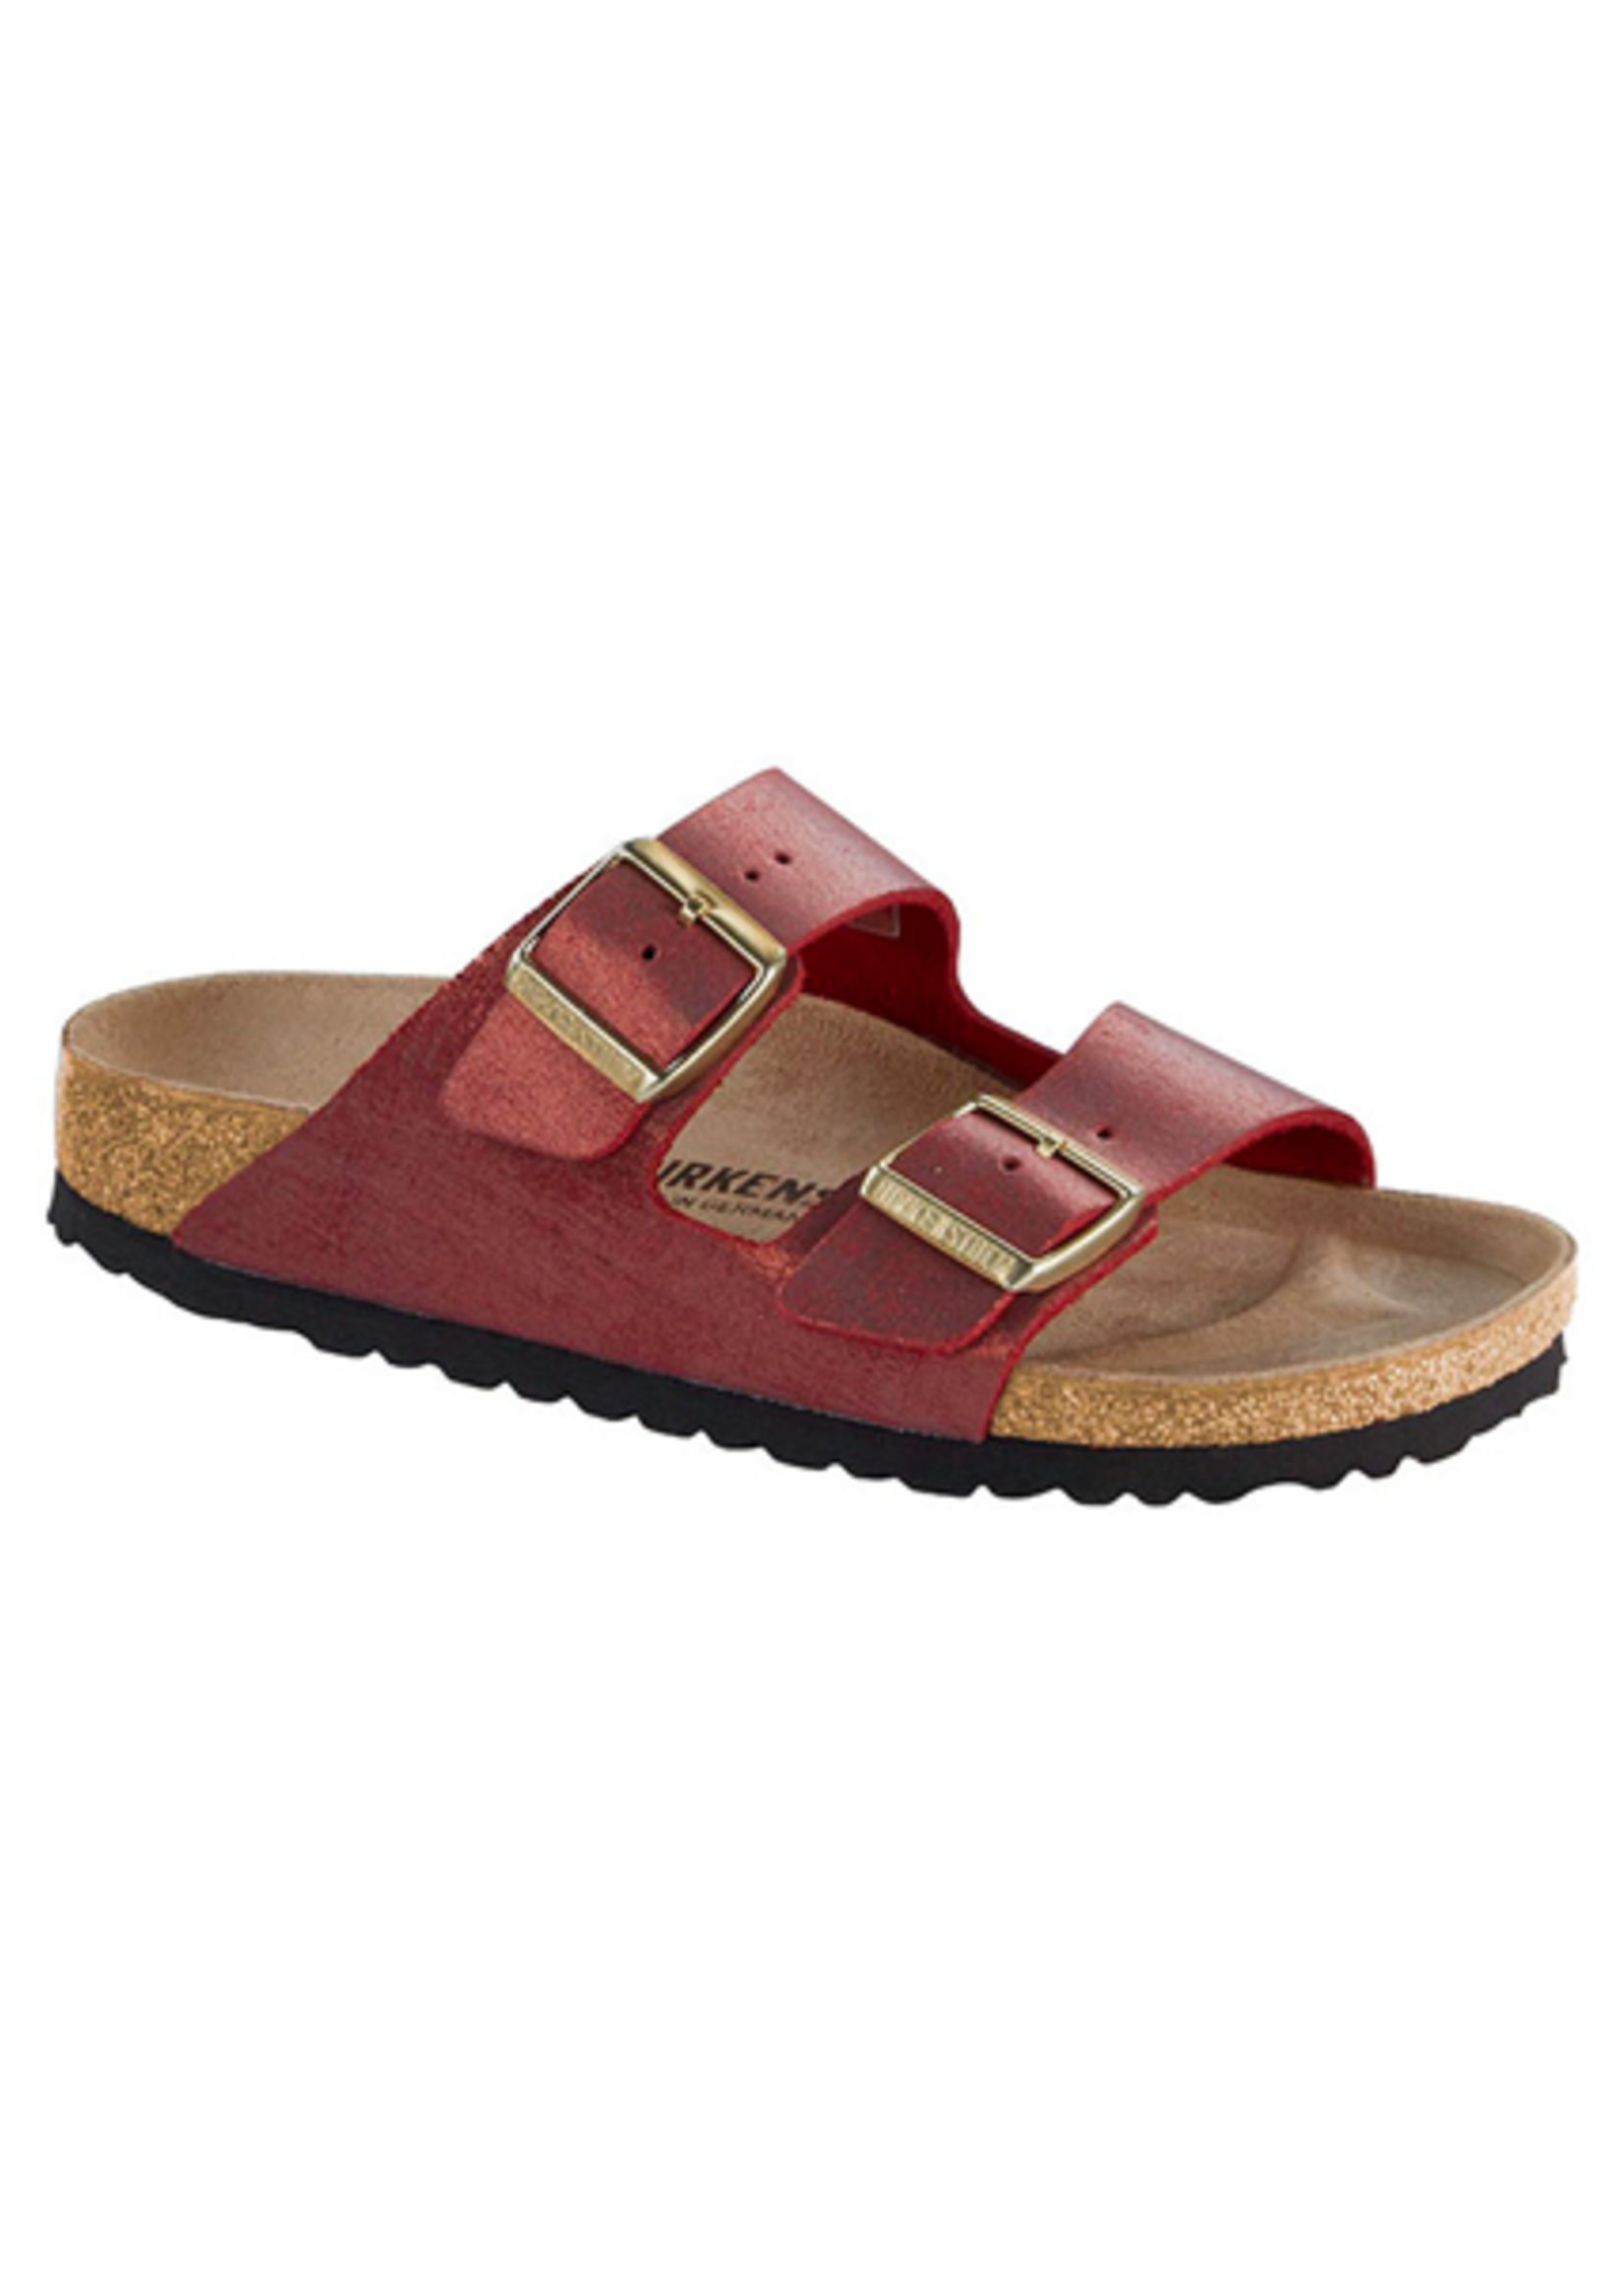 Birkenstock Arizona - Suede Leather in Washed Metallic Port (Classic Footbed - Suede Lined)